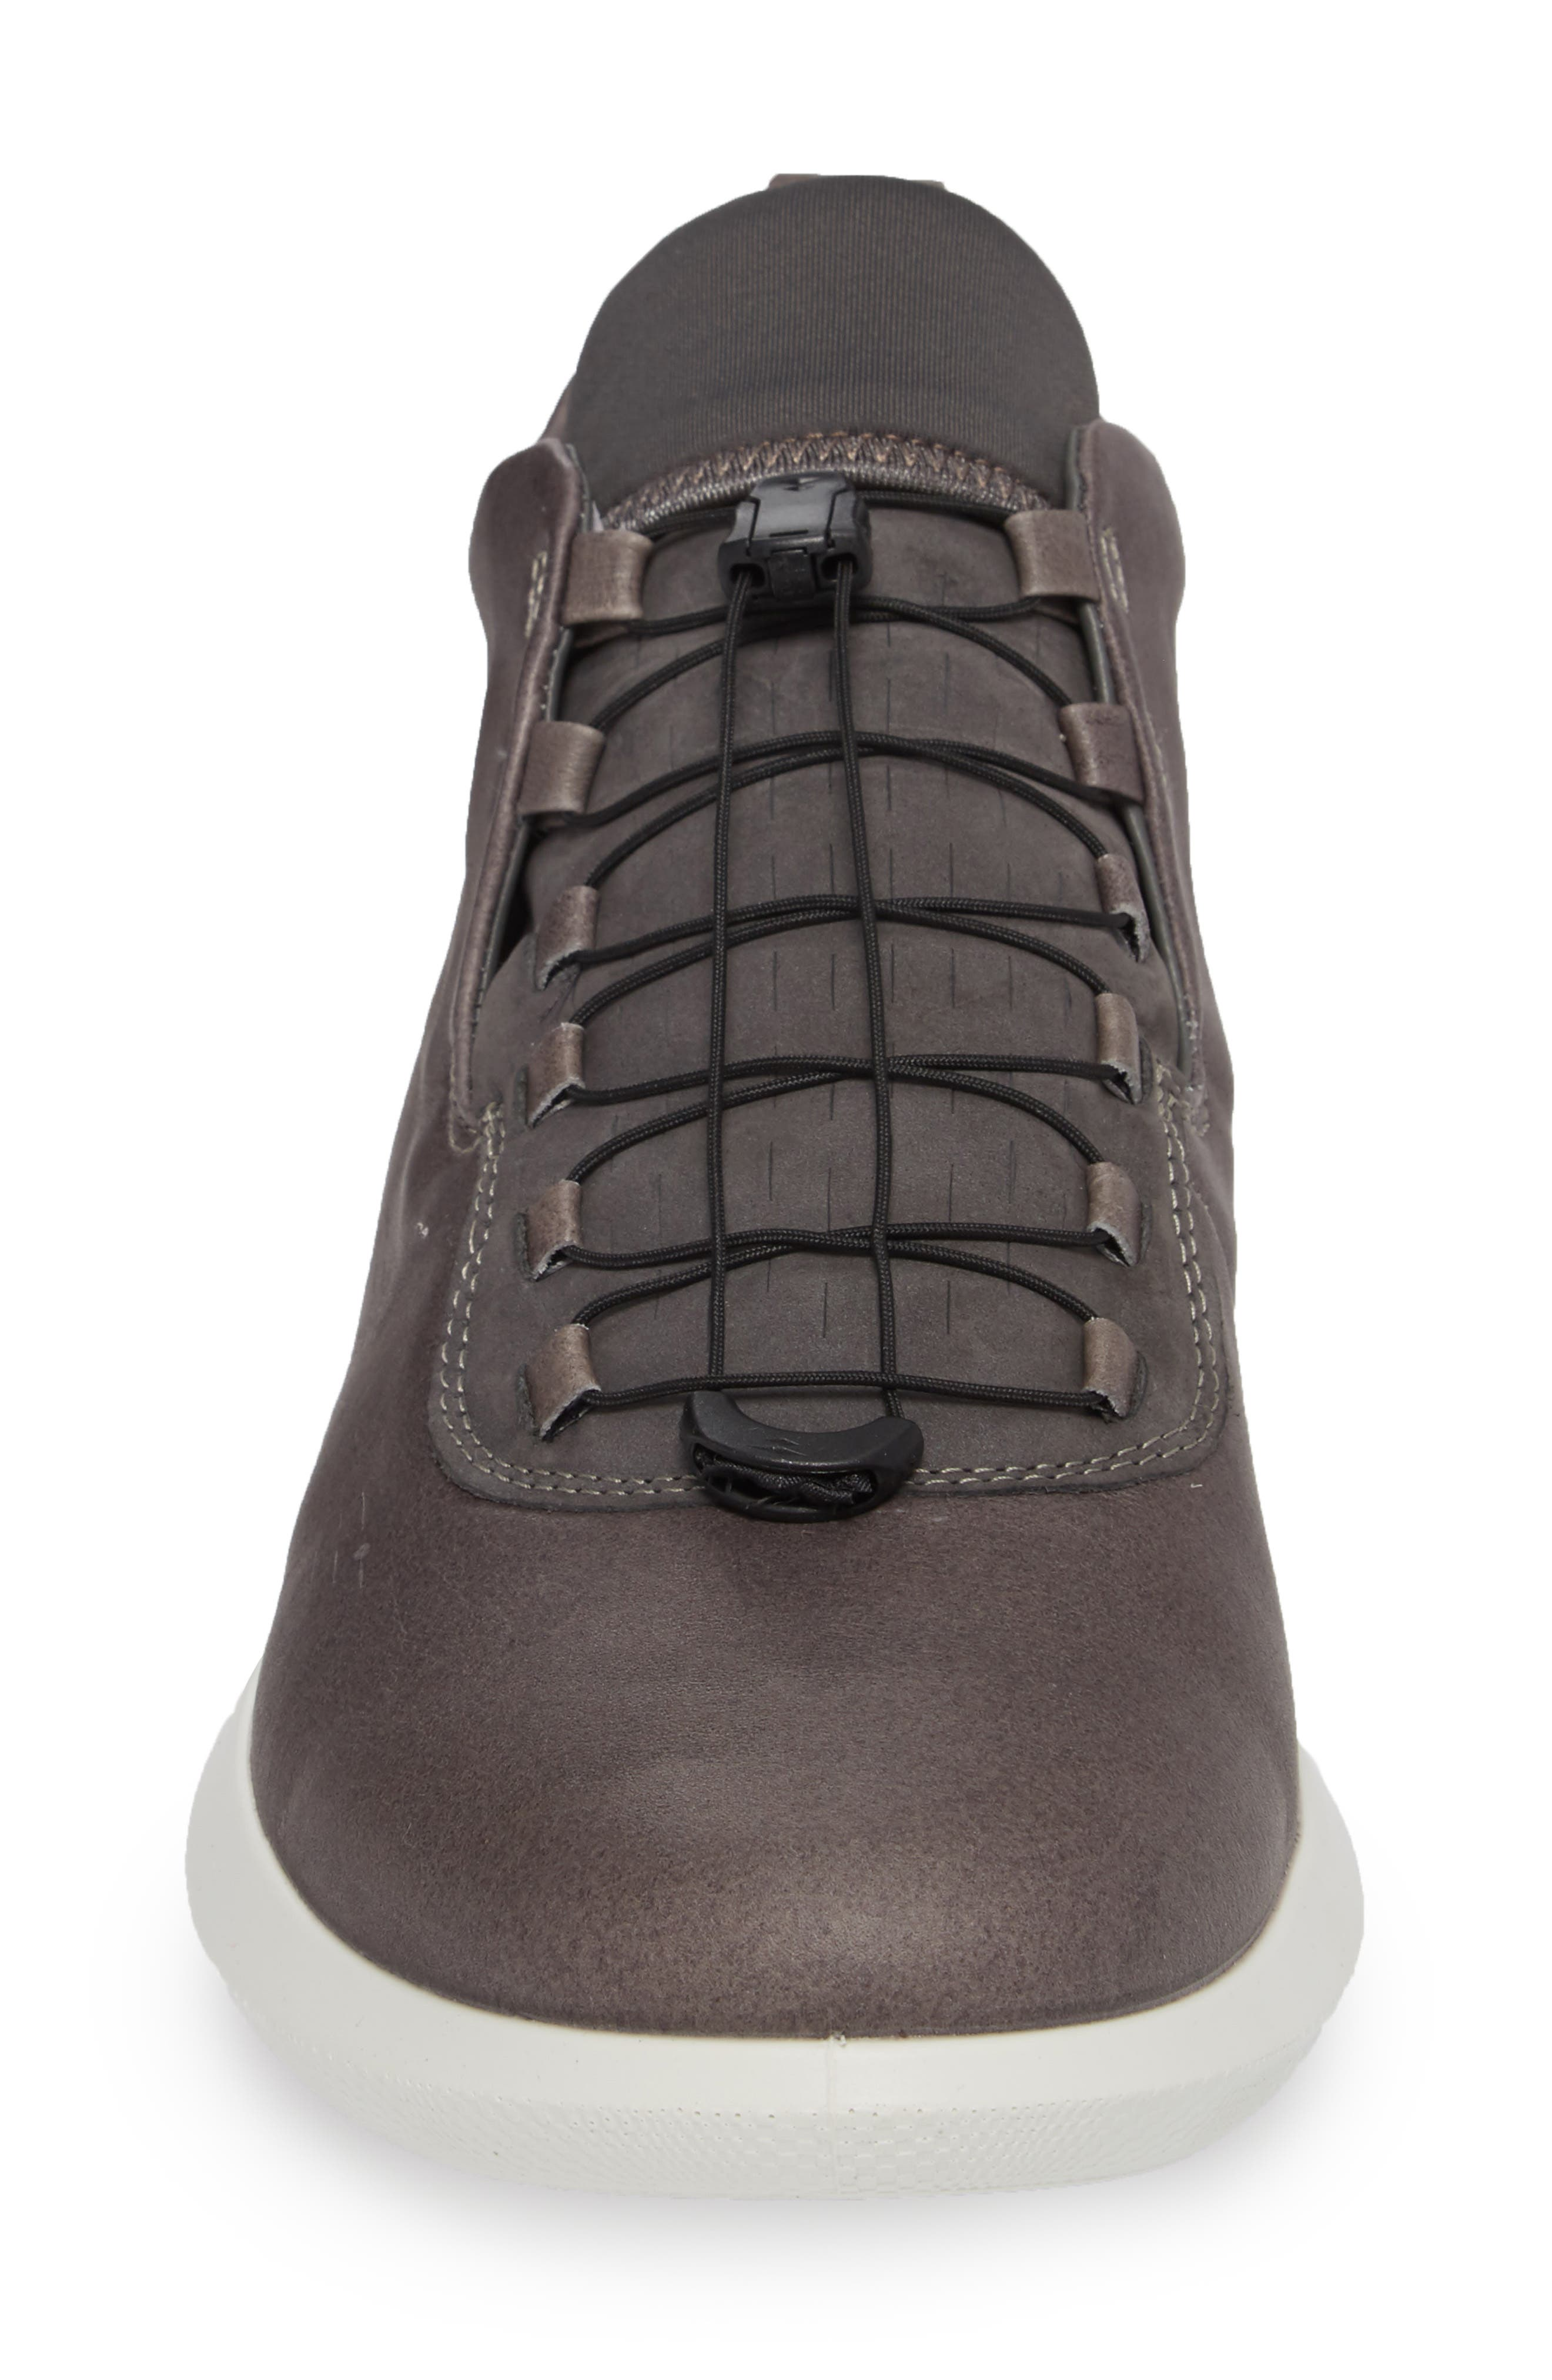 Scinapse High Top Sneaker,                             Alternate thumbnail 4, color,                             Wild Dove Leather